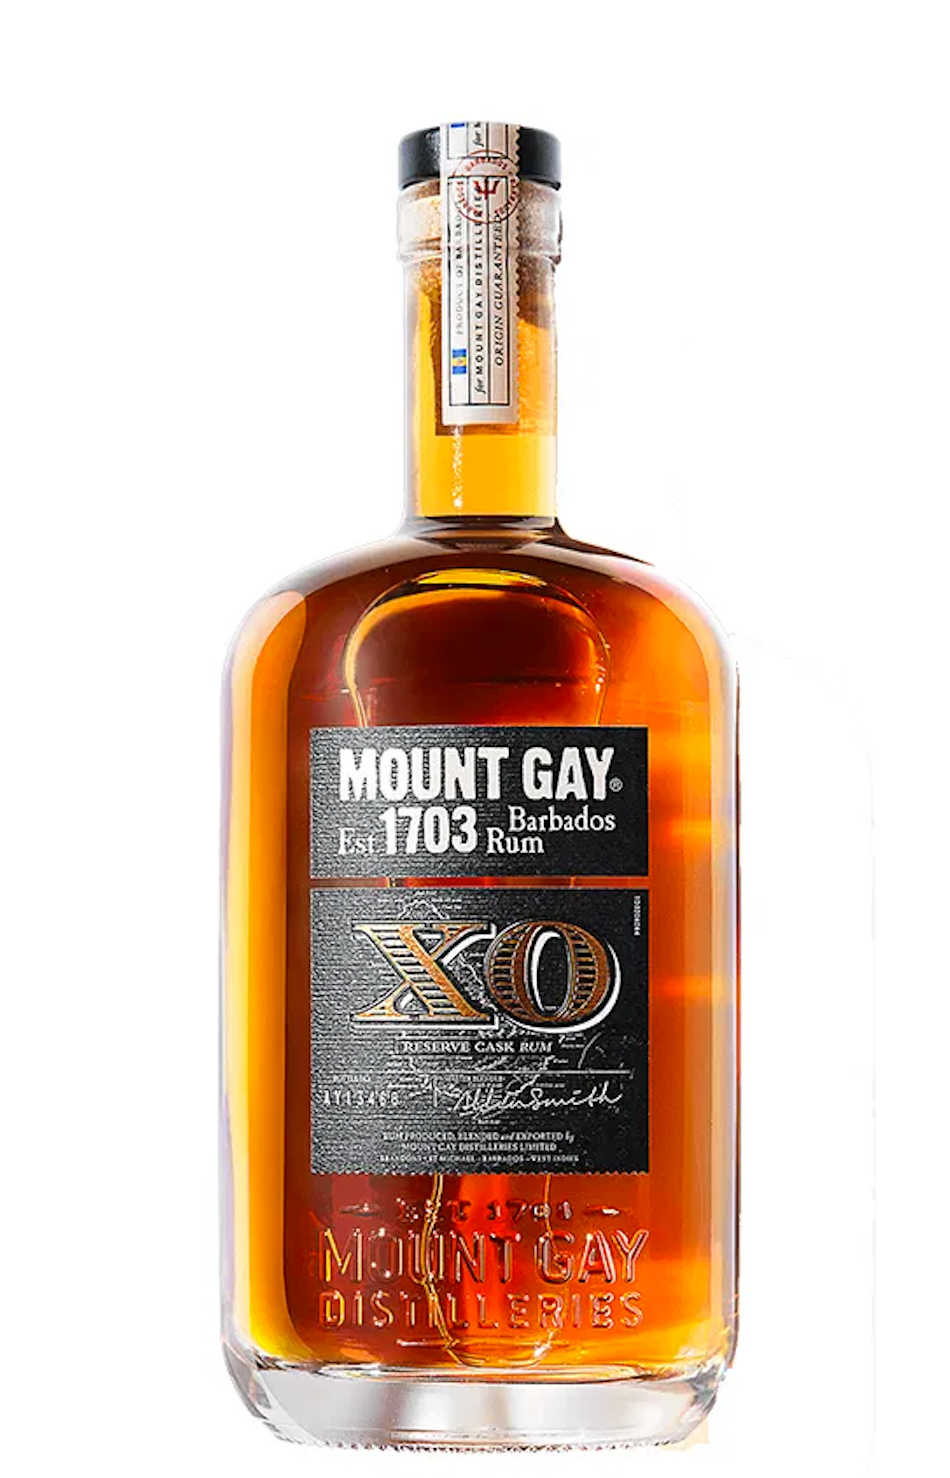 Mount Gay XO Barbados Rum